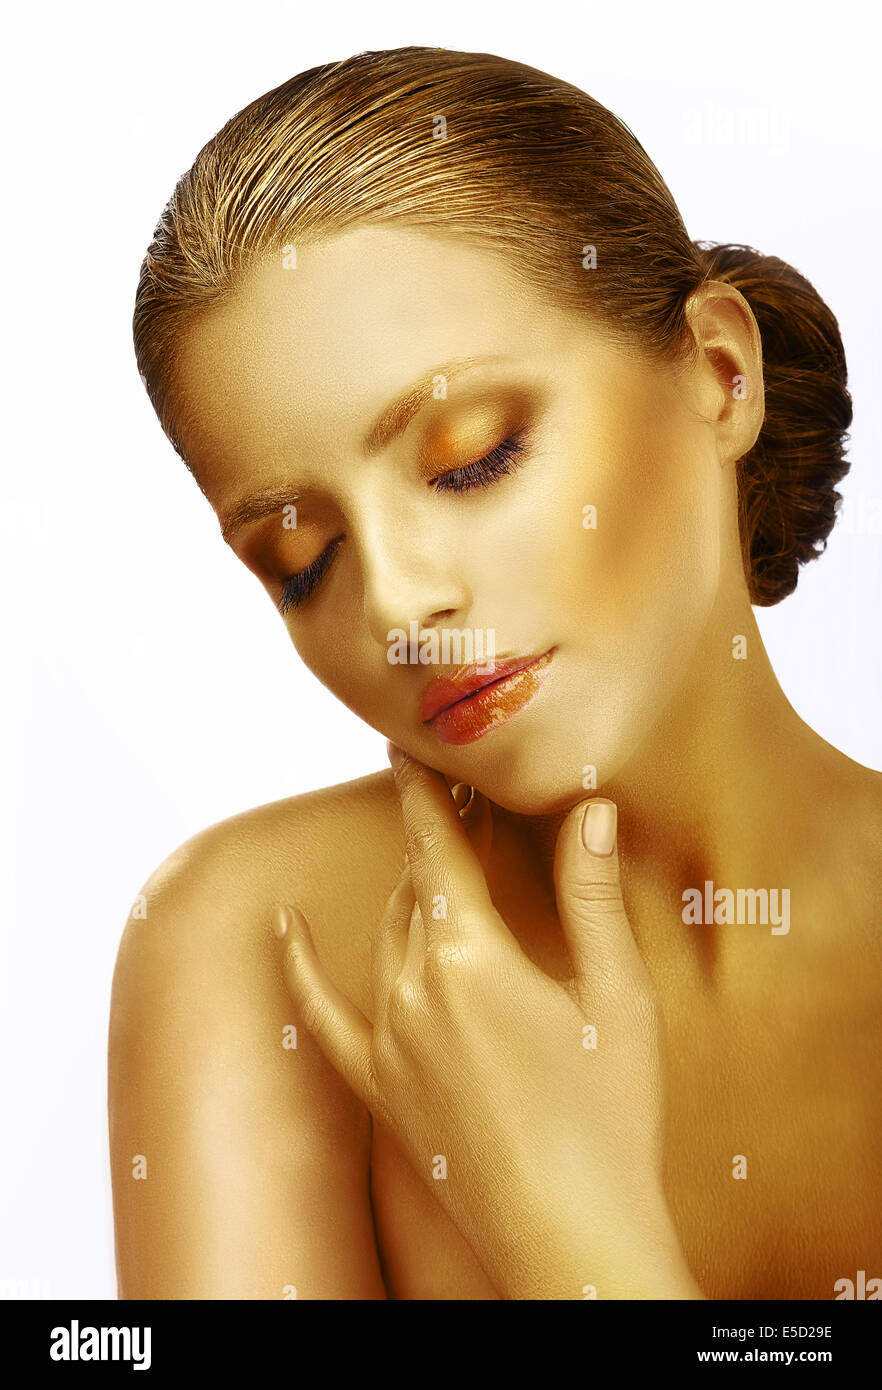 Tenderness. Dreamy Sophisticated Woman with Closed Eyes in Reverie - Stock Image